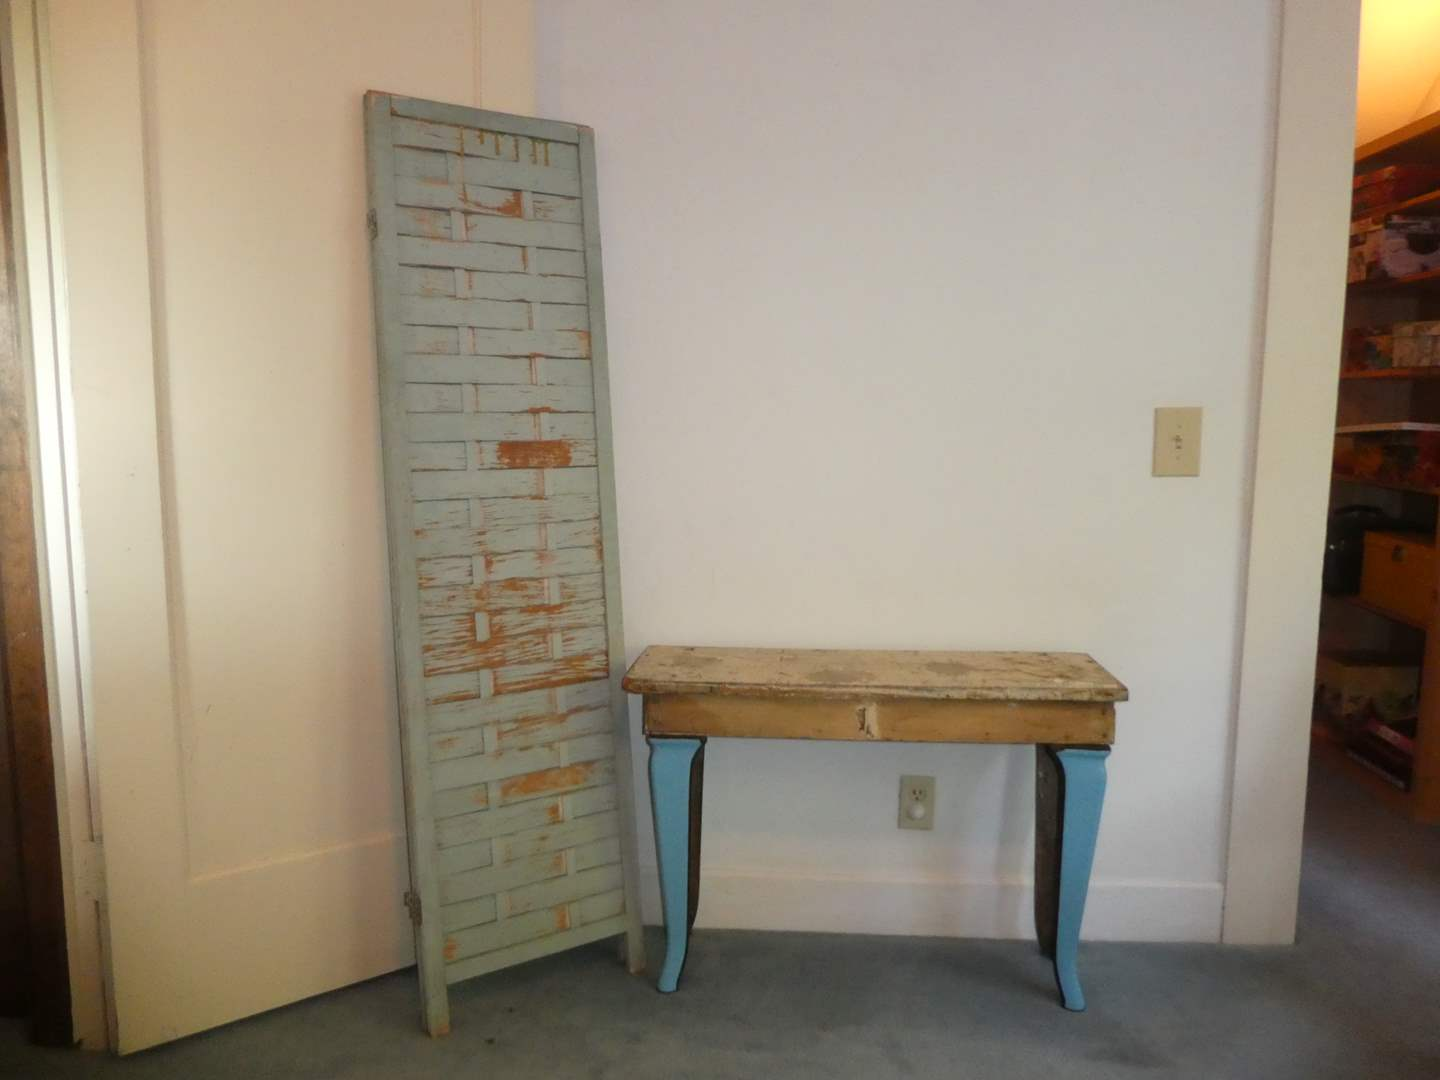 Lot # 1 - Vintage Accent Table w/ Metal Legs and Two Panel Shabby Chic Room Divider (main image)